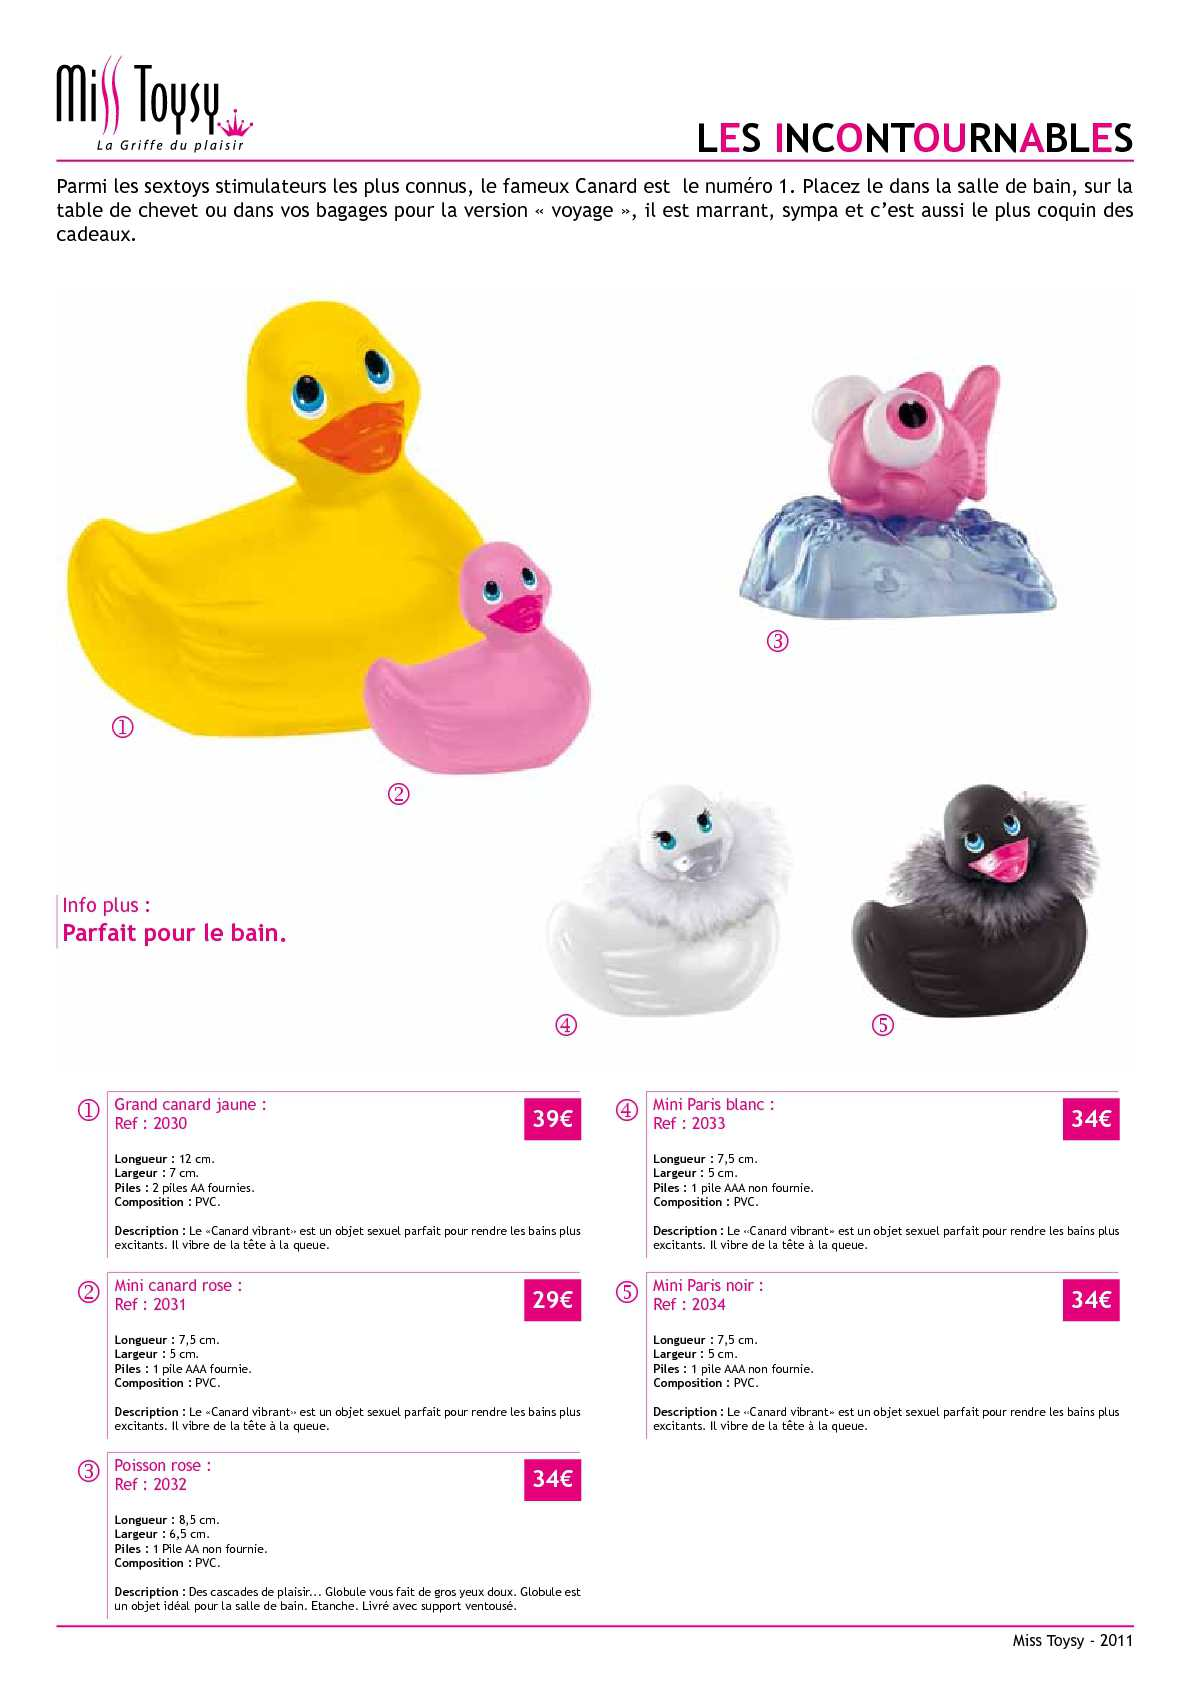 Miss Toysy Catalogue Sextoys Et Cosmetique Calameo Downloader